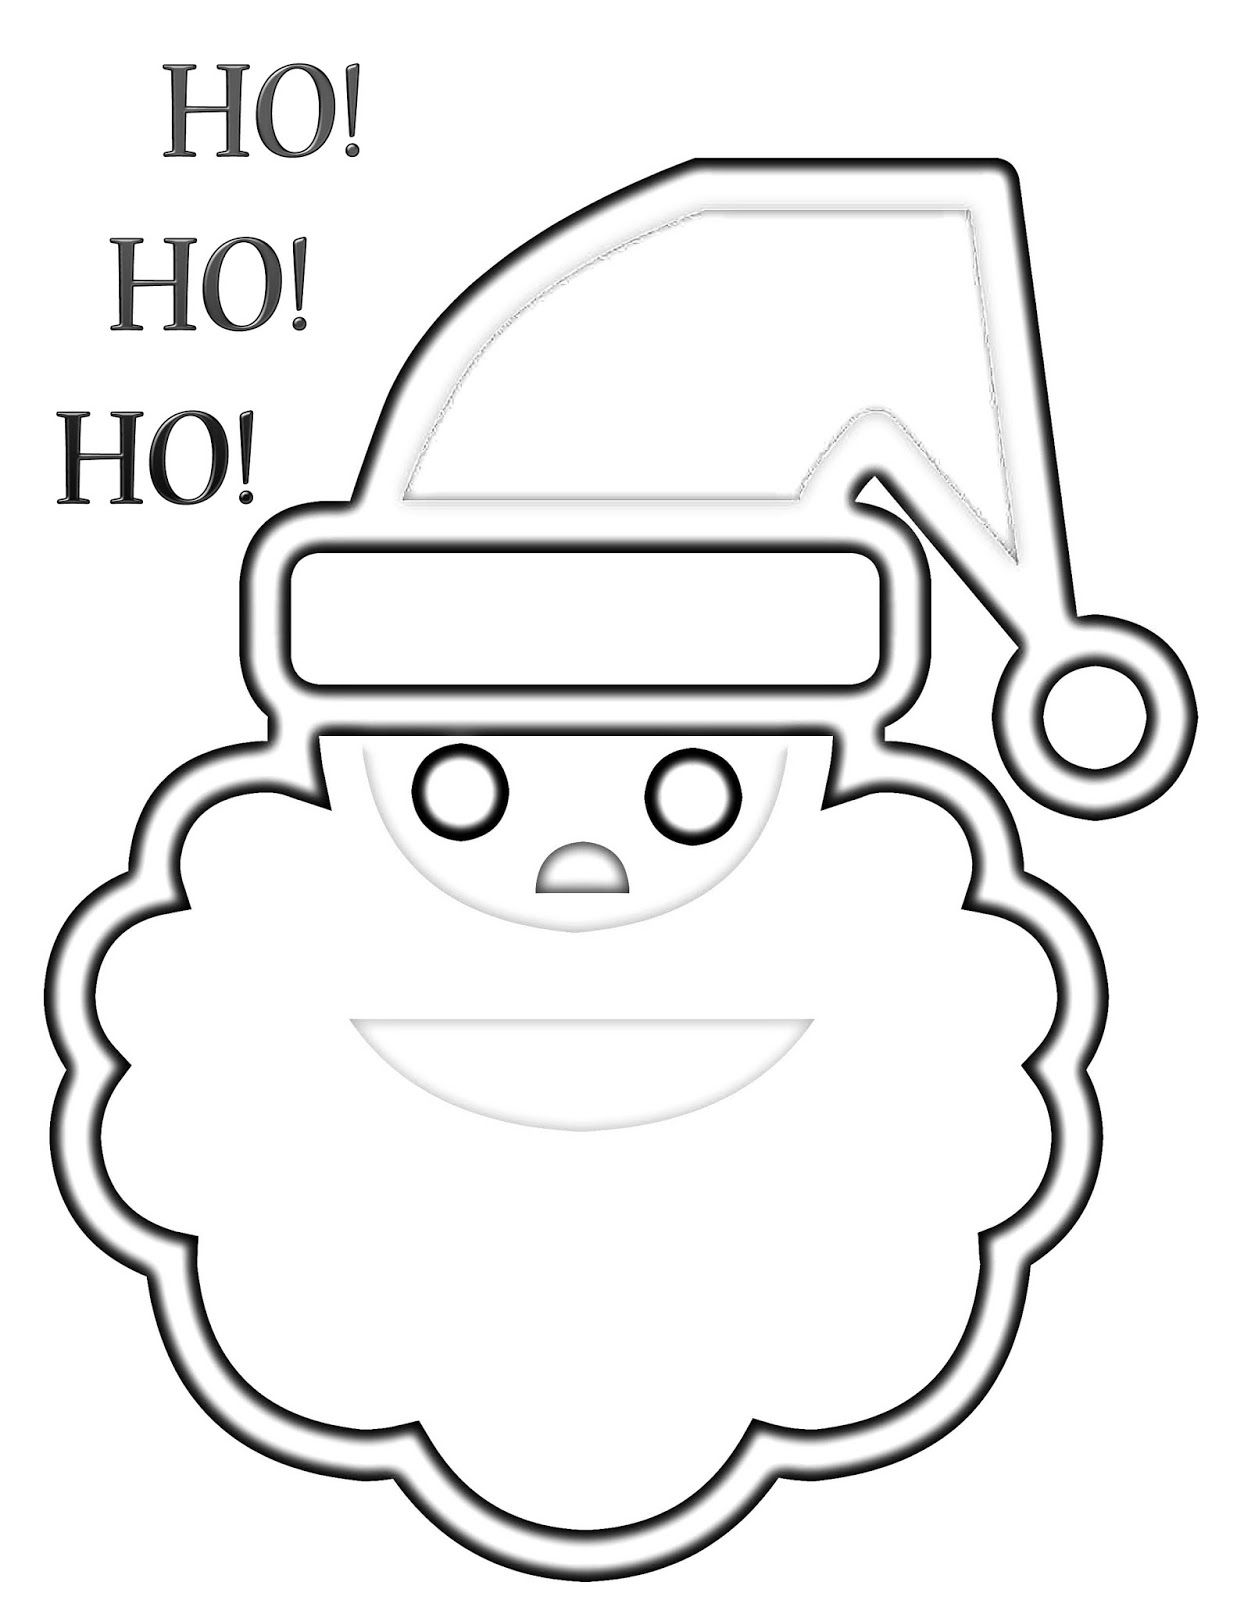 Christmas Coloring Page: Santa | CJO Photo: Christmas | Pinterest ...